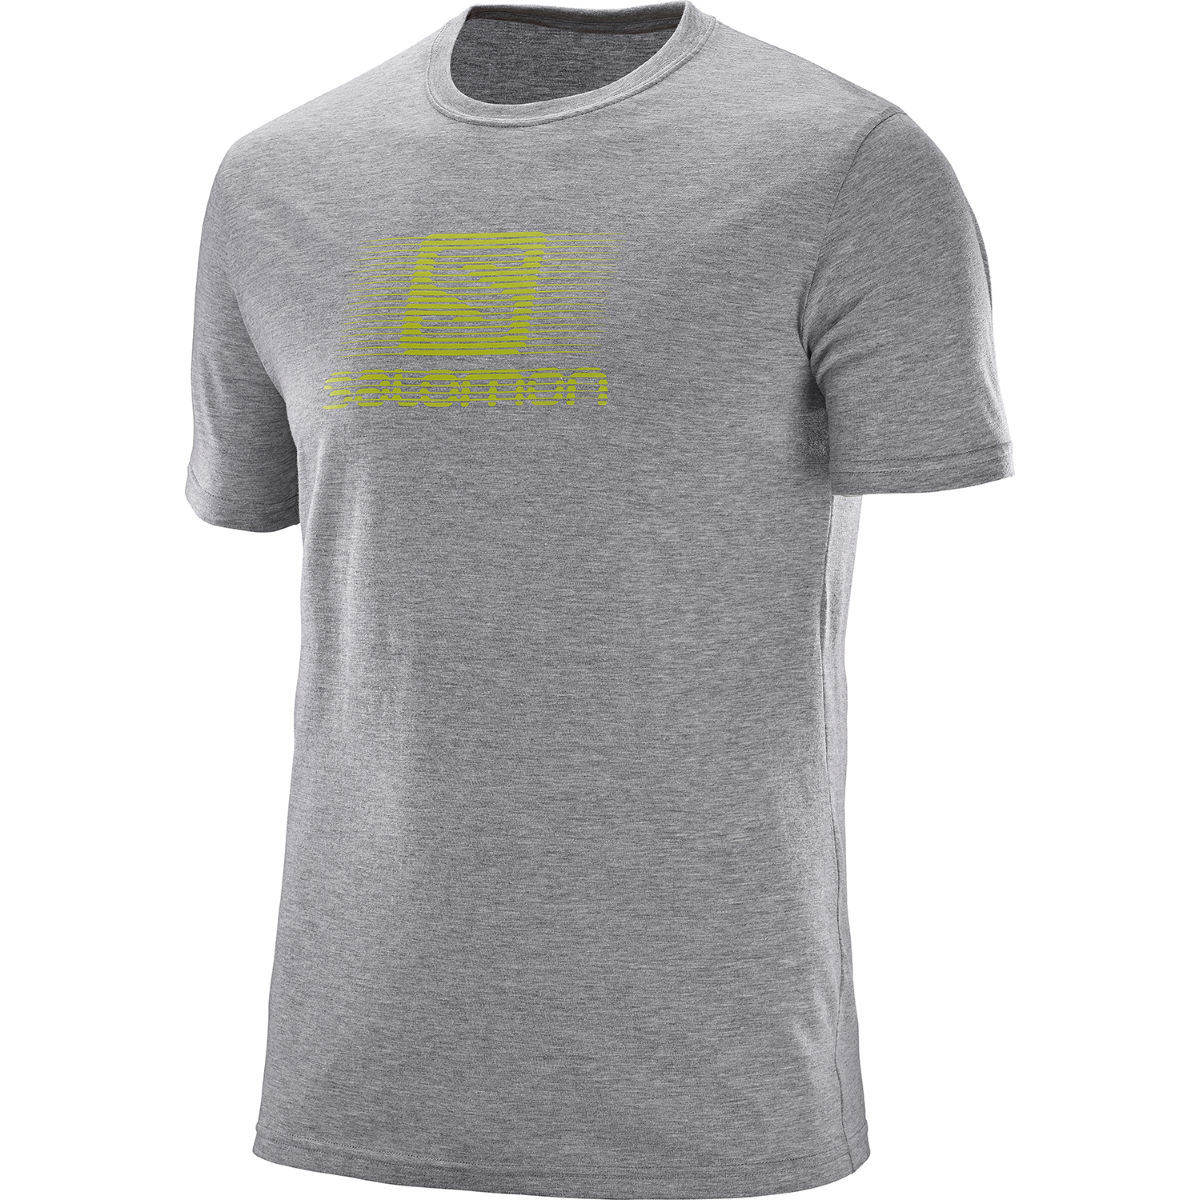 Salomon blend logo short sleeve t shirt review for T shirt company reviews